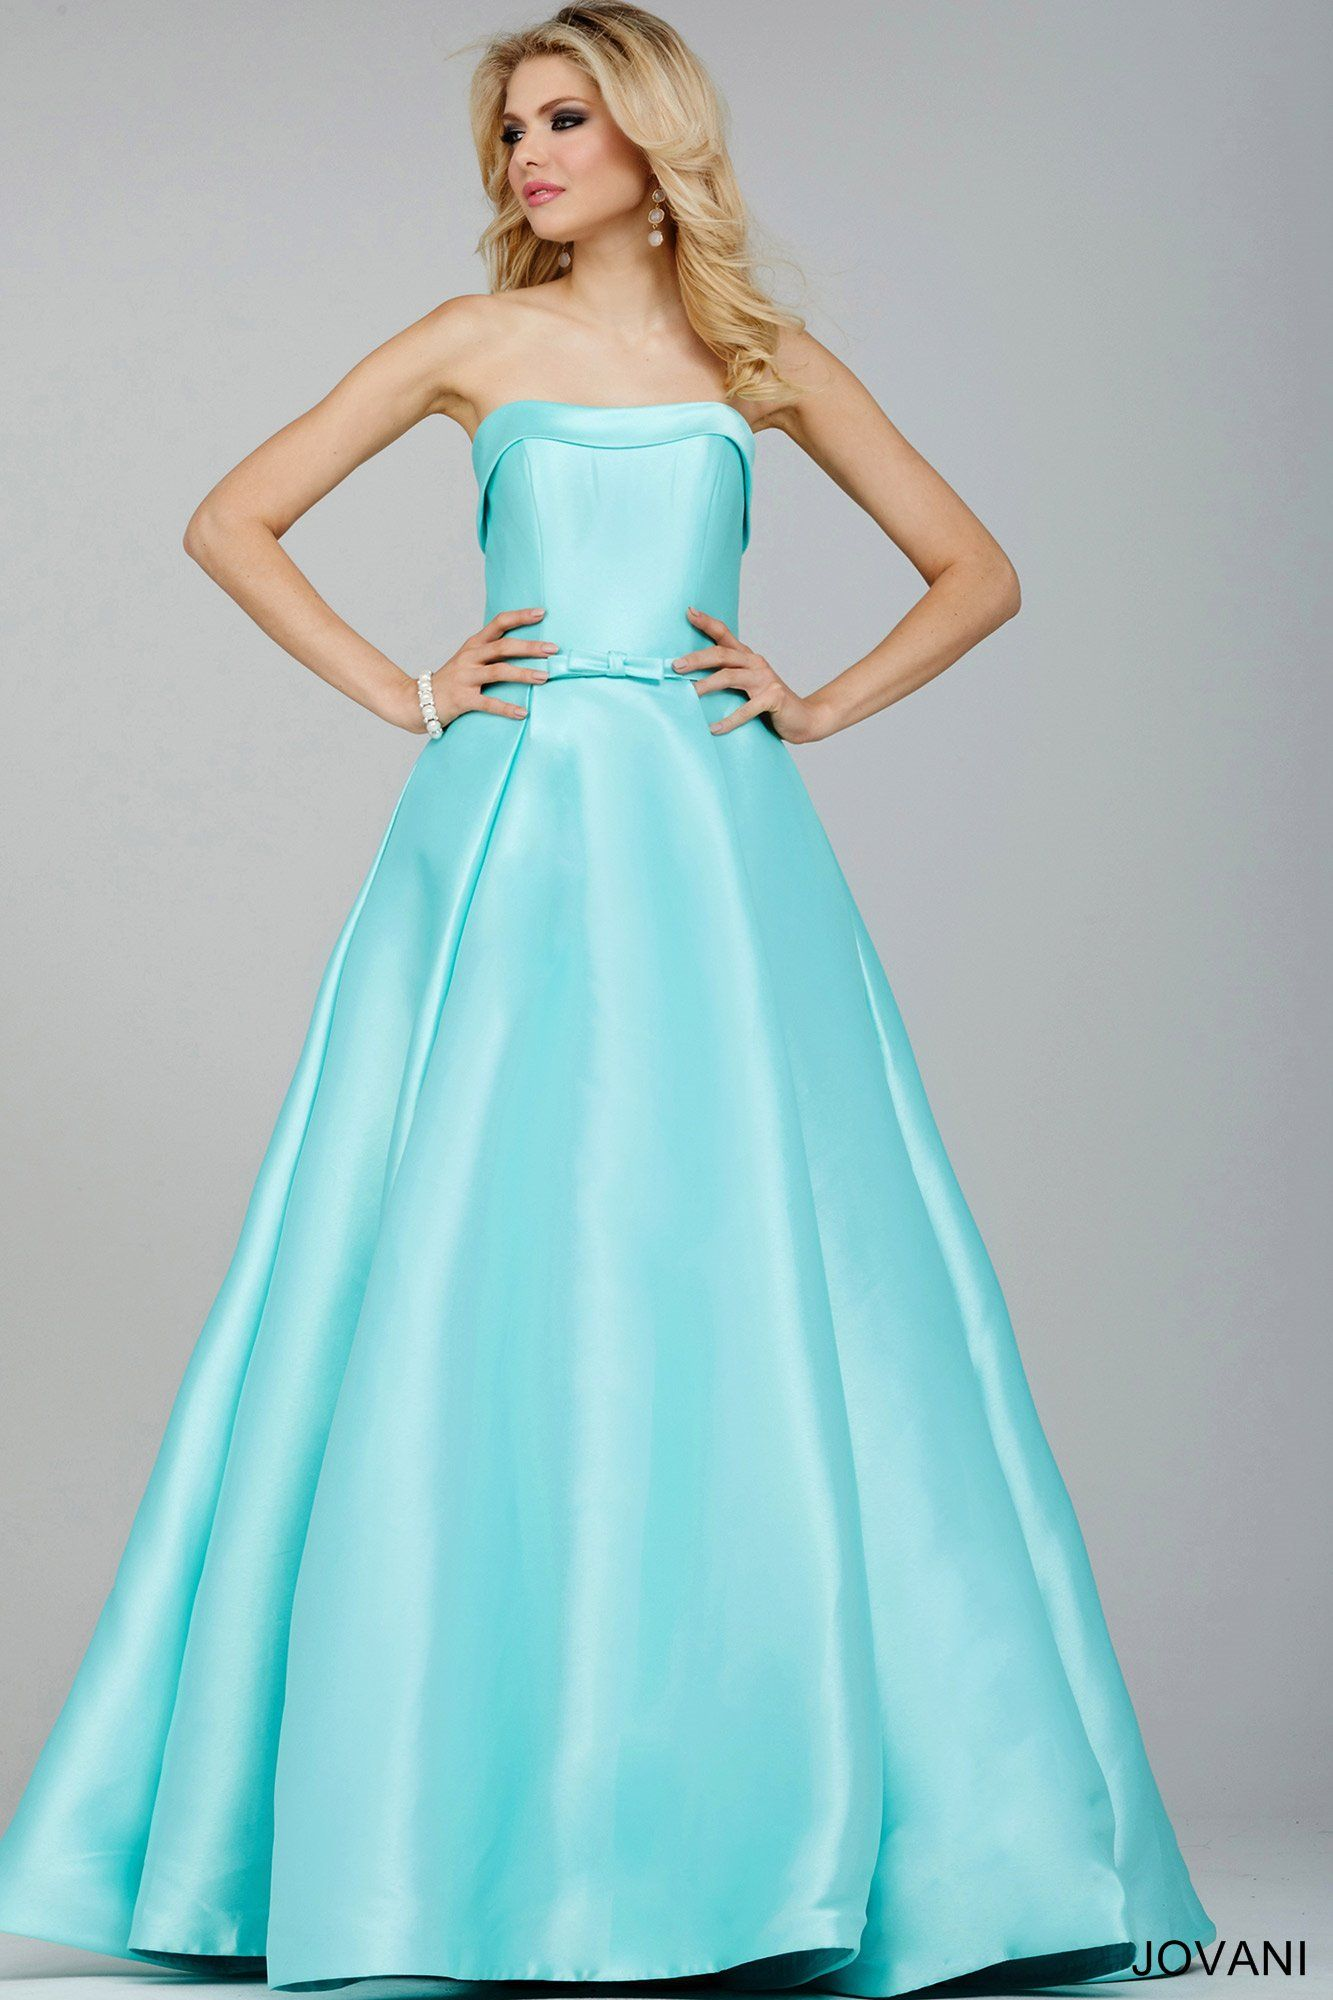 This beautiful tiffany blue ball gown by jovani looks like it came